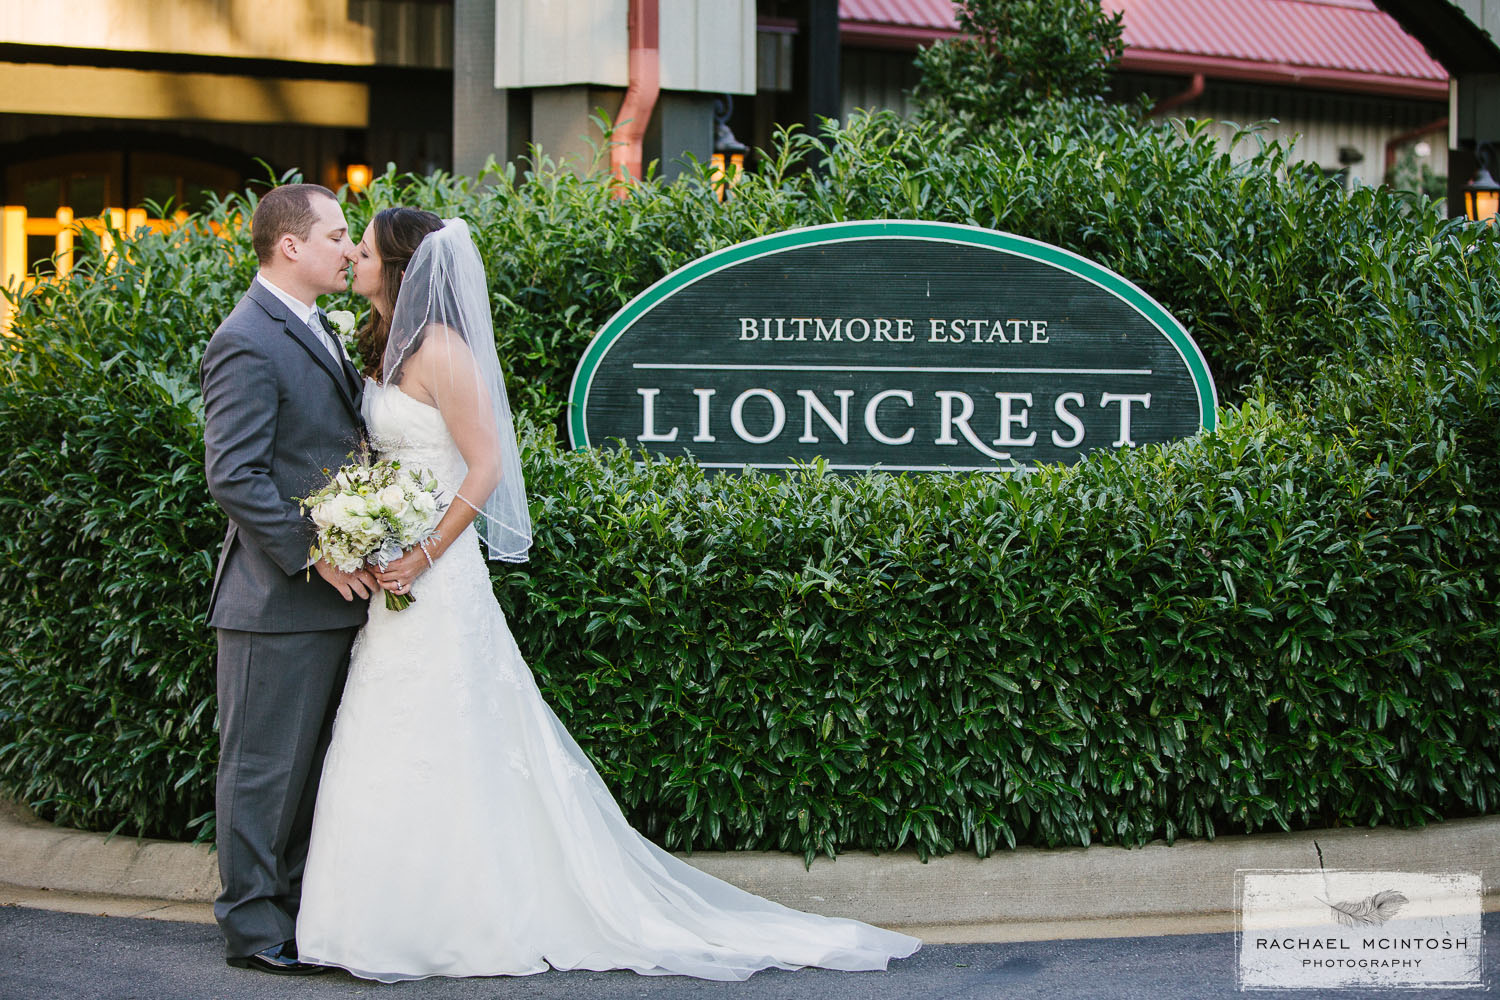 Biltmore Estate Wedding, Lioncrest